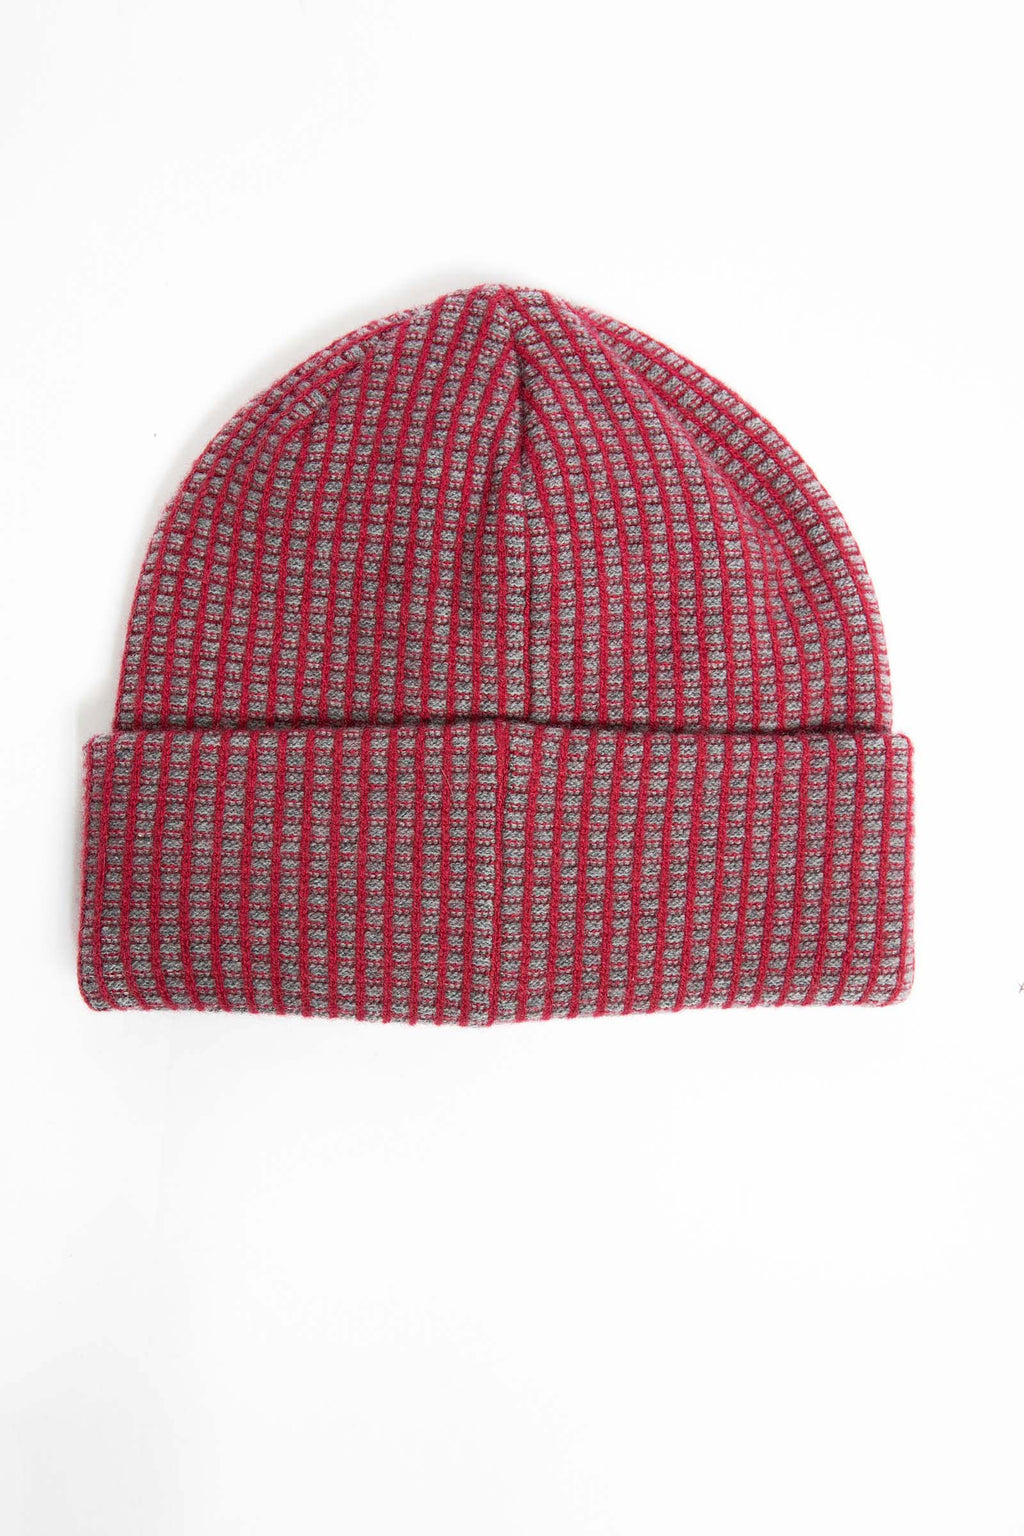 I.S.M. 'Pearl Lager' Red Cashmere Beanie